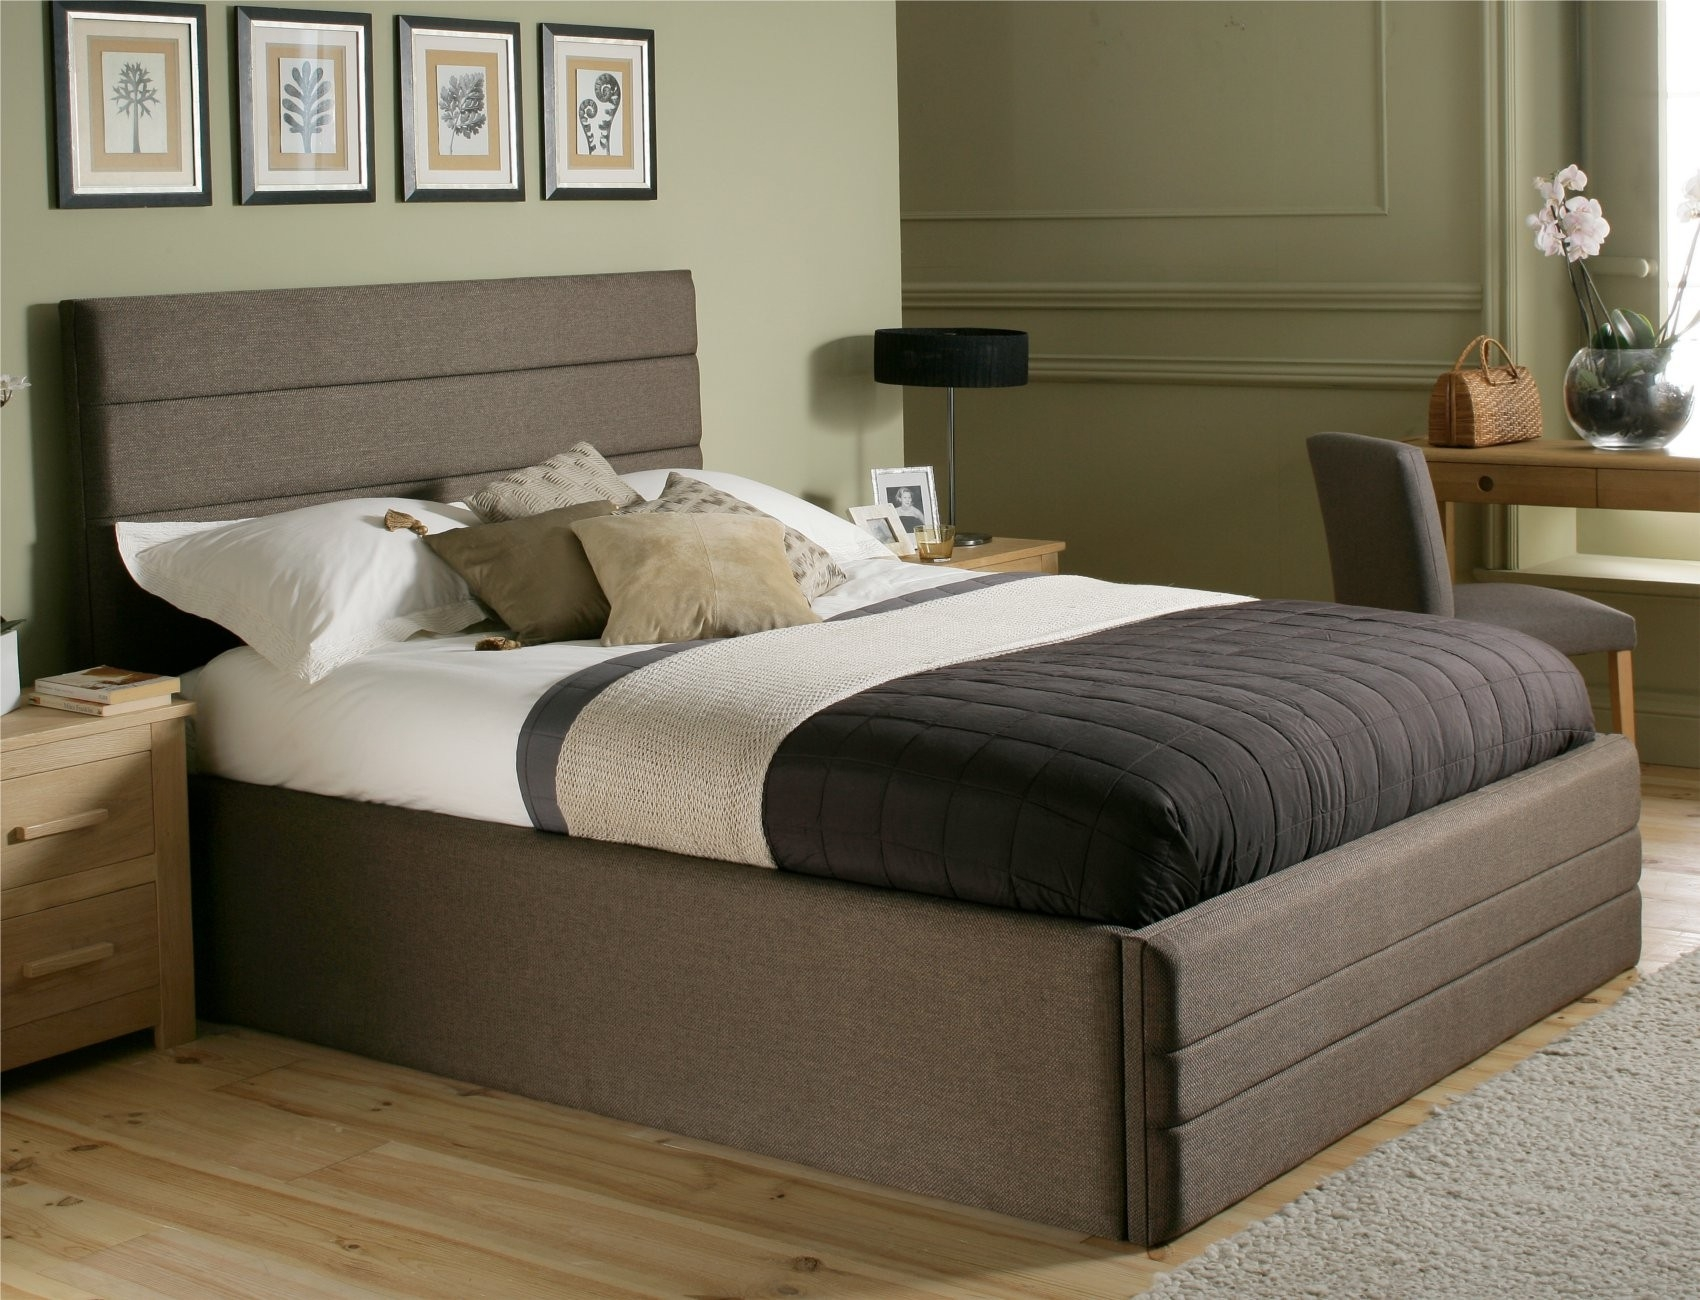 King Bed Frame And Mattress Set